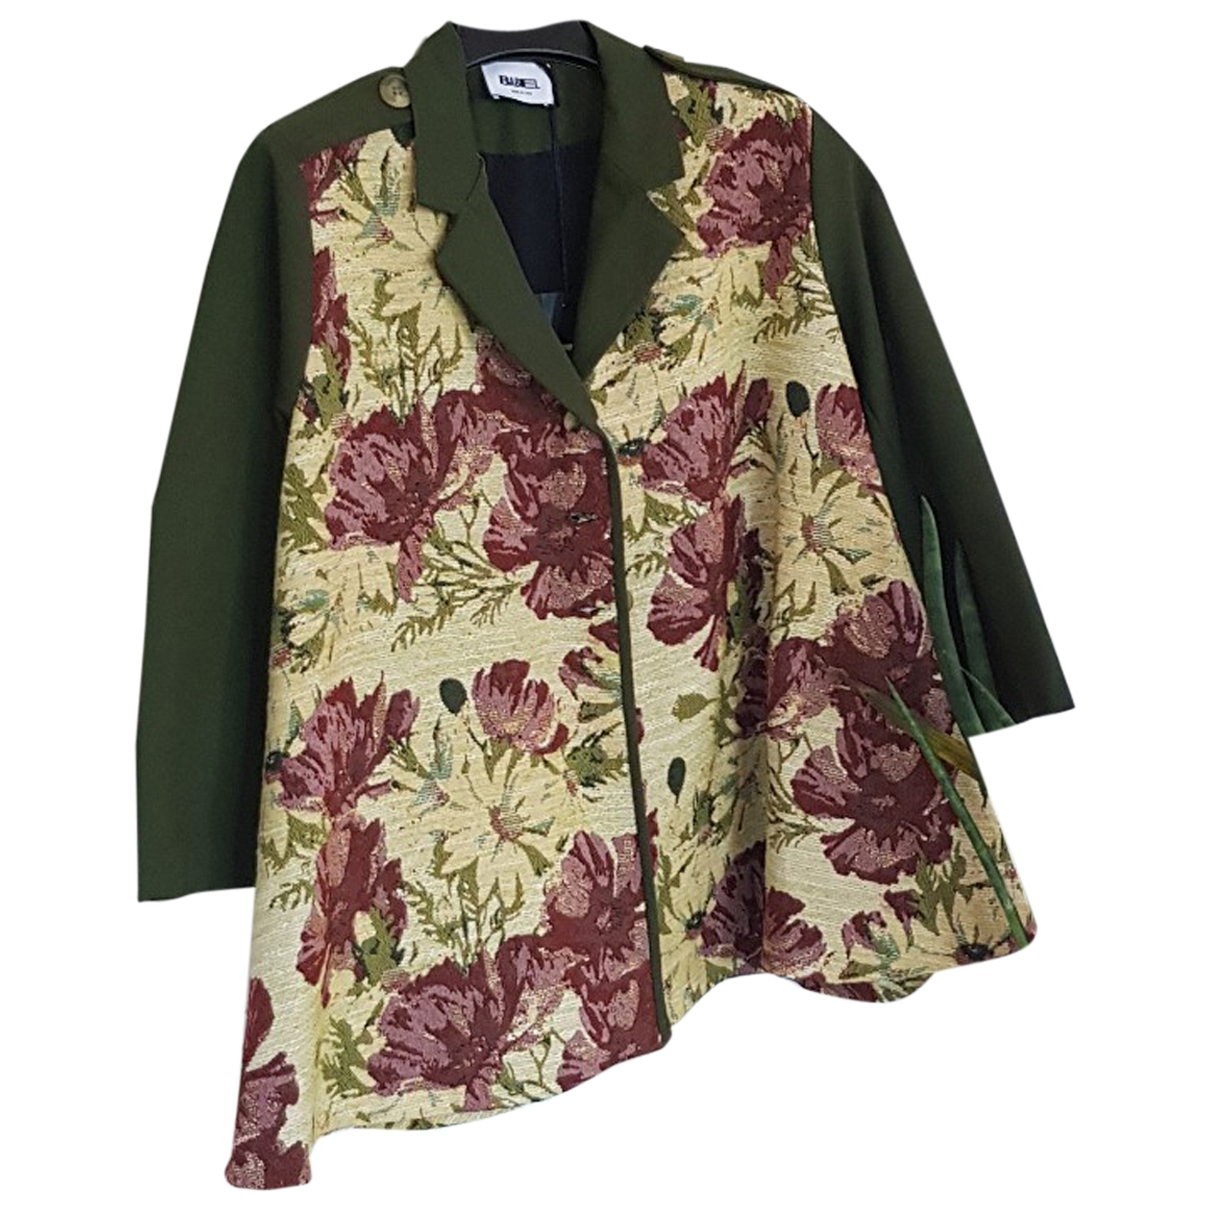 Non Signé / Unsigned N Multicolour Cotton jacket for Women One Size International